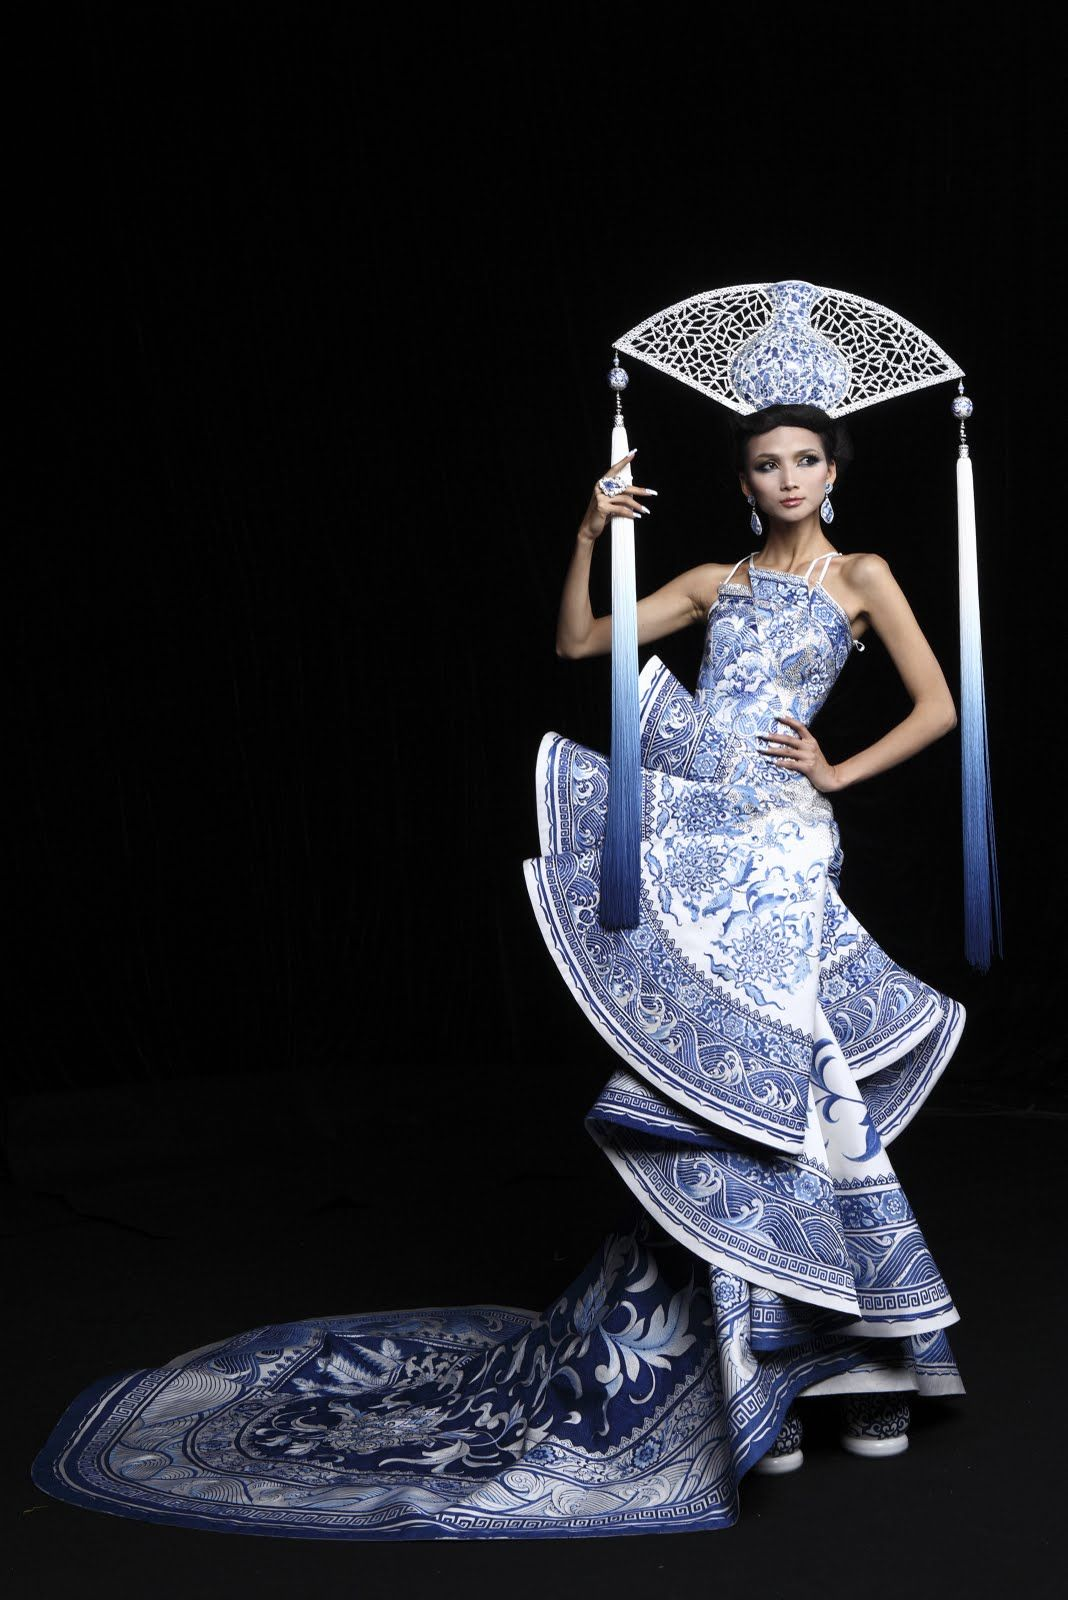 Guo Pei FW10/11 Ready-To-Wear